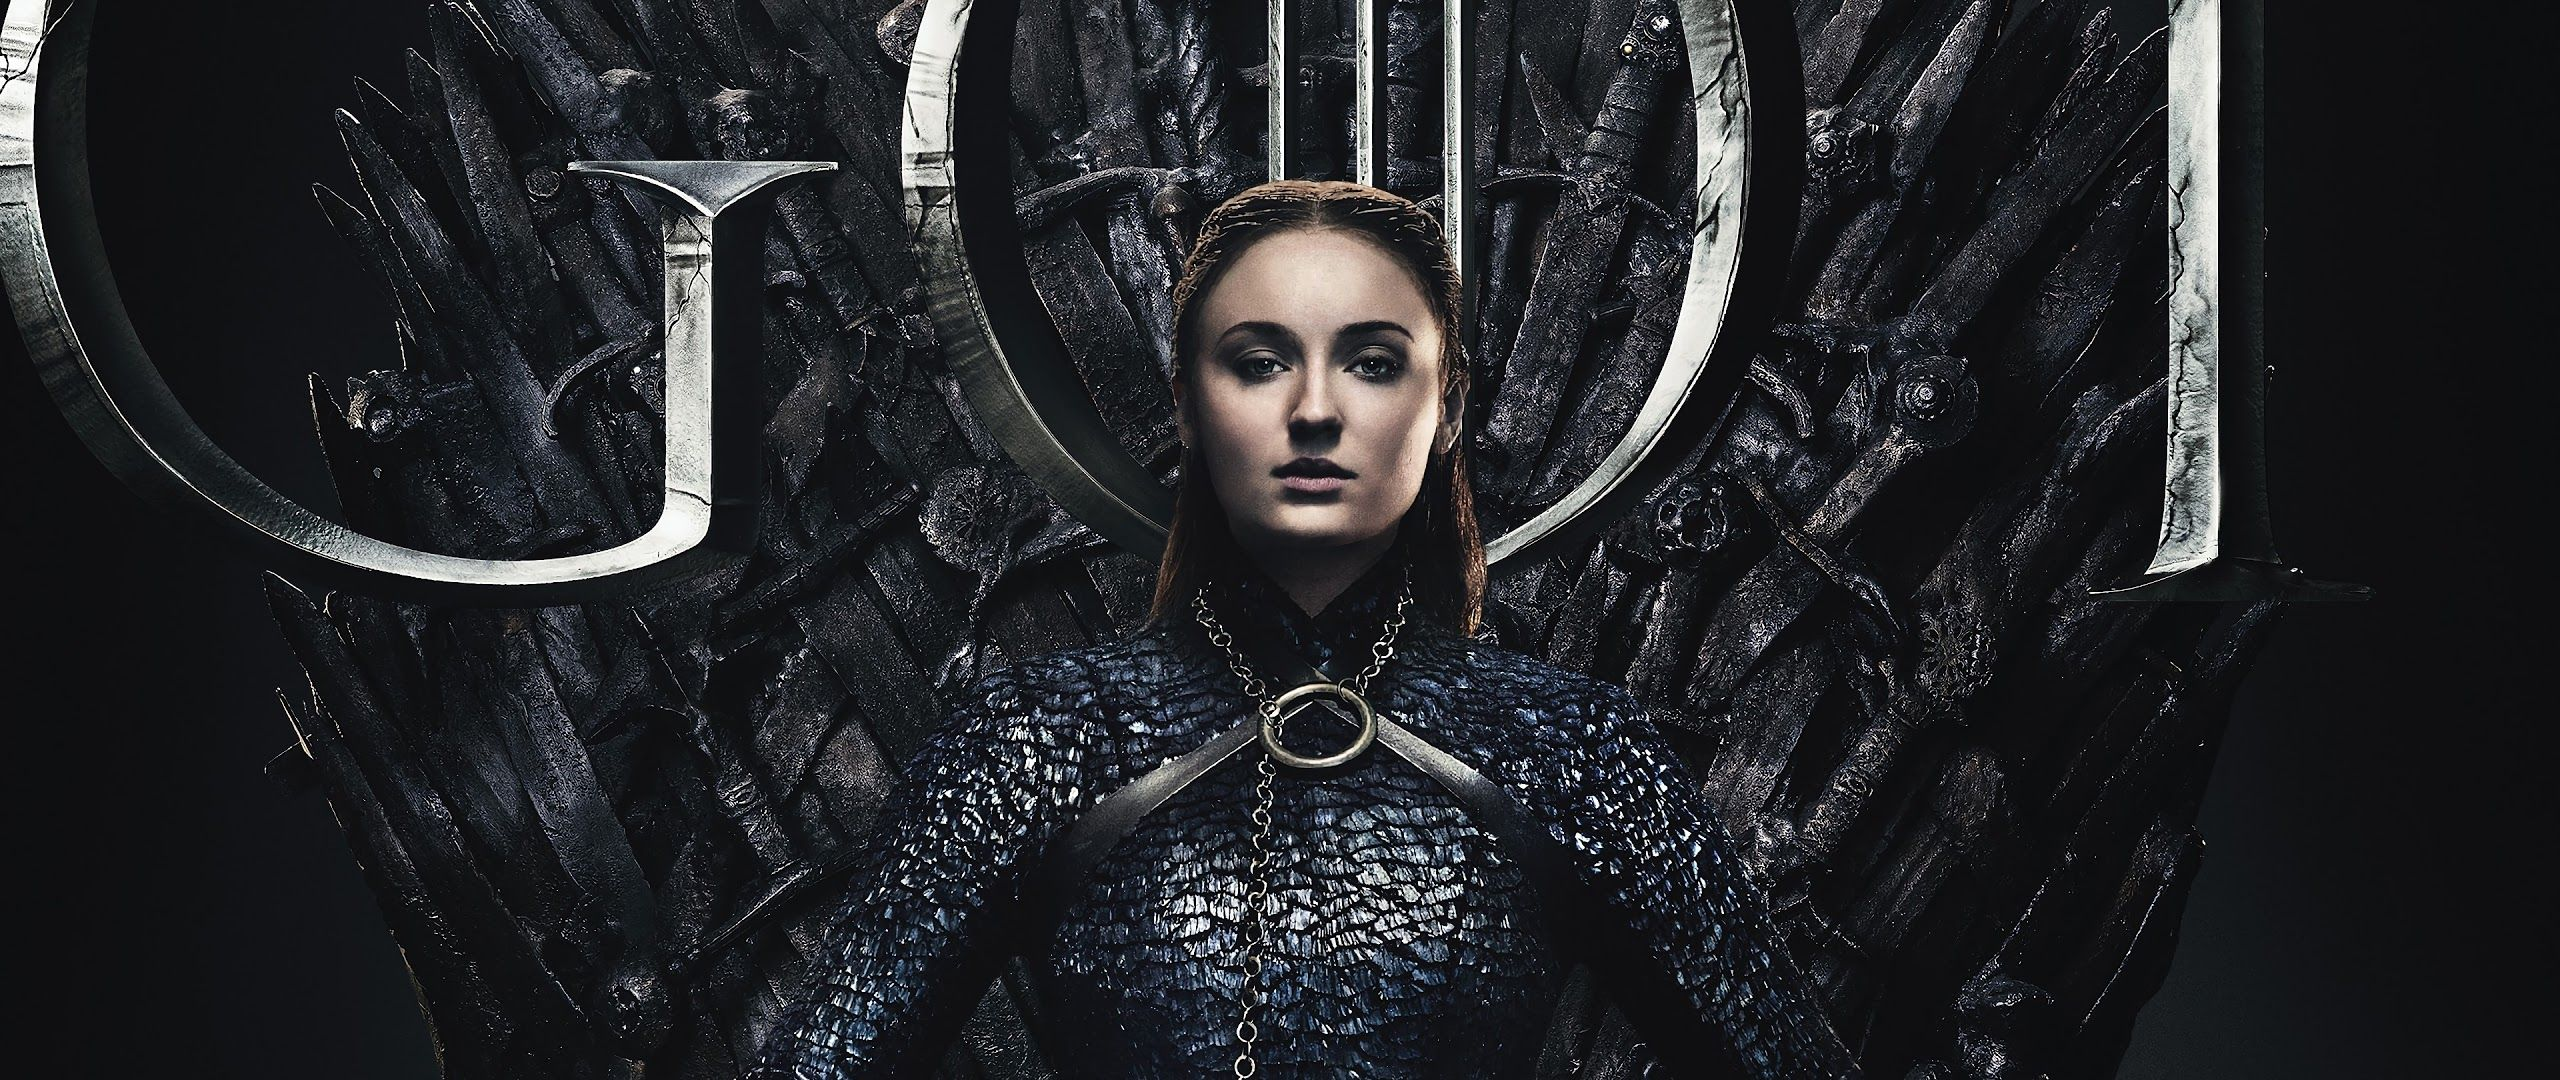 Game Of Thrones Season 8 Wallpapers - Top Free Game Of ...